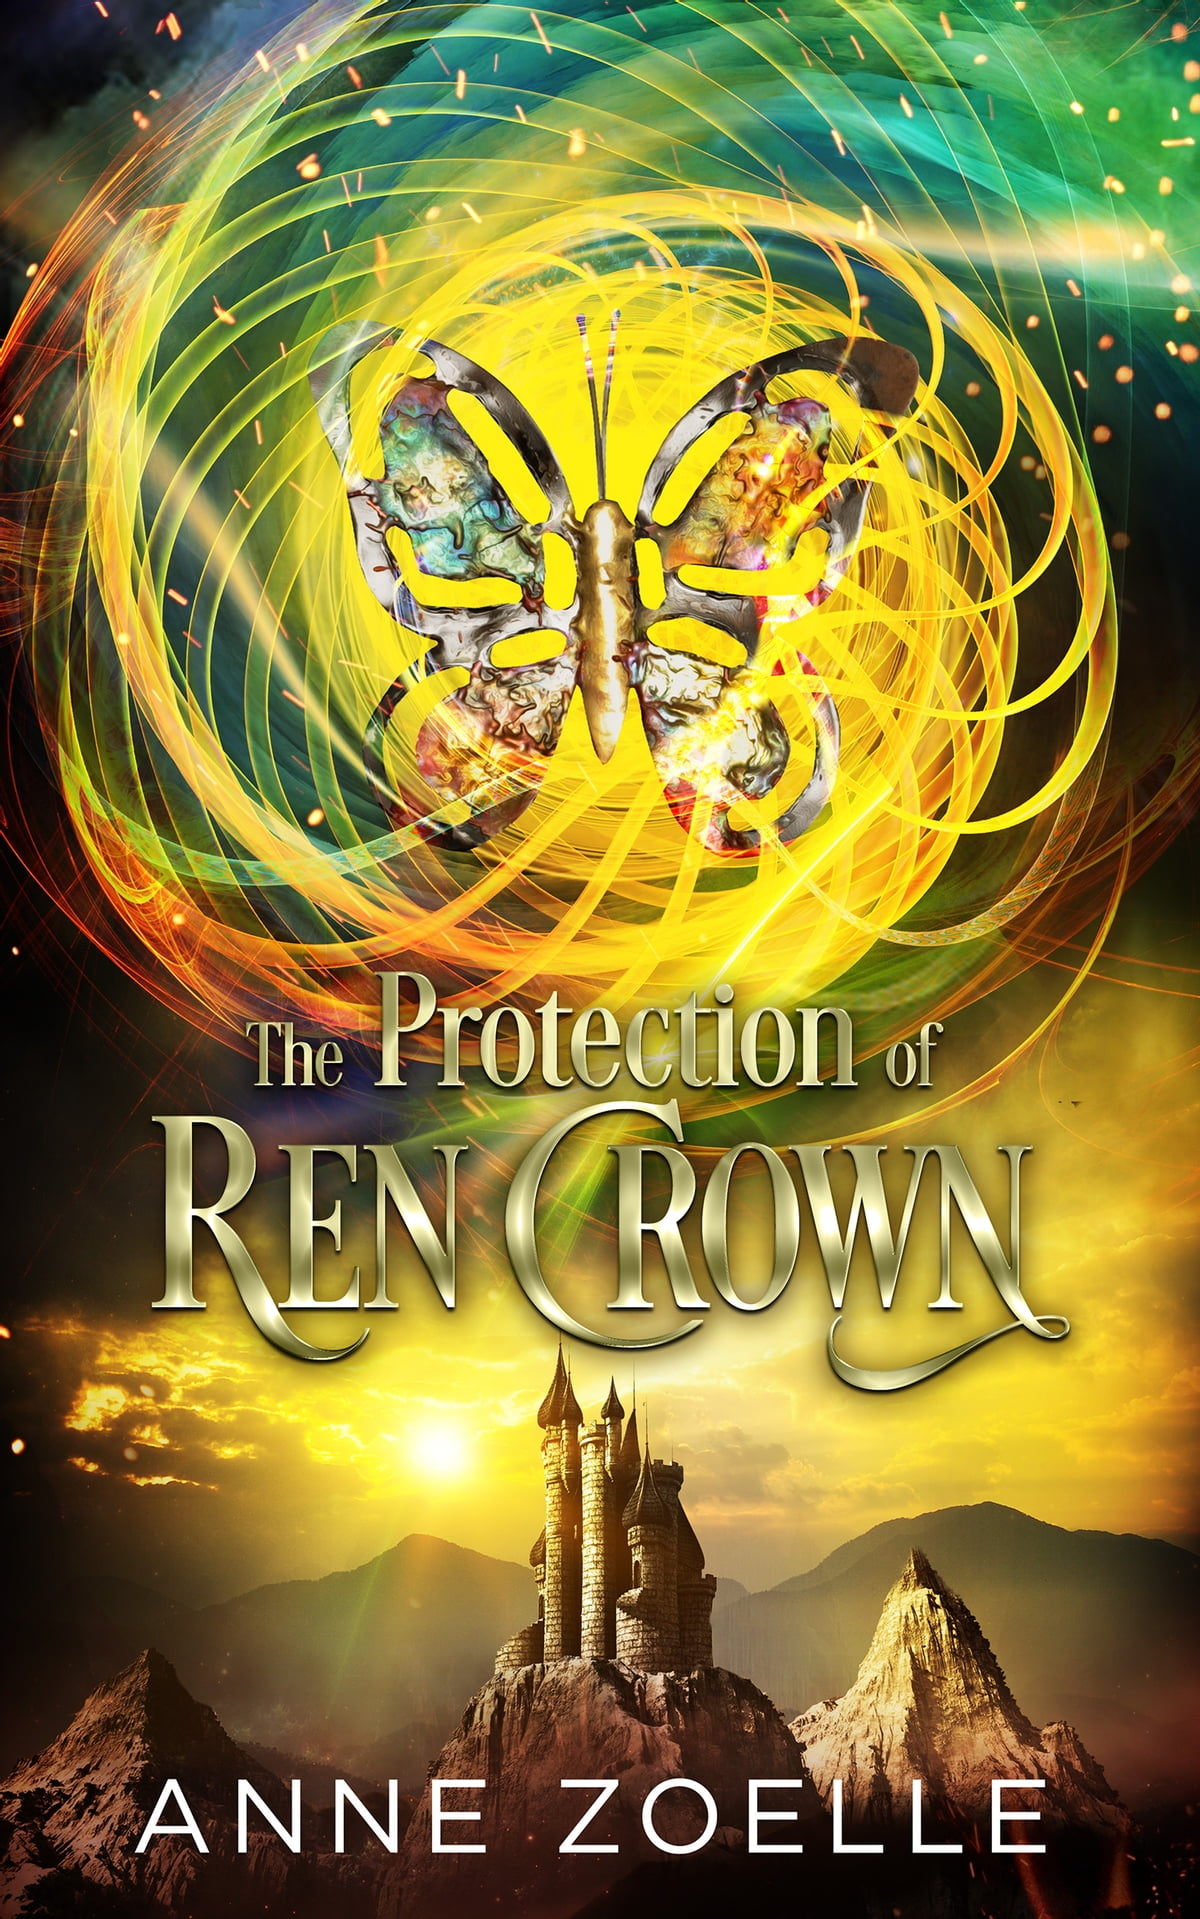 Download free a crown imperiled epub